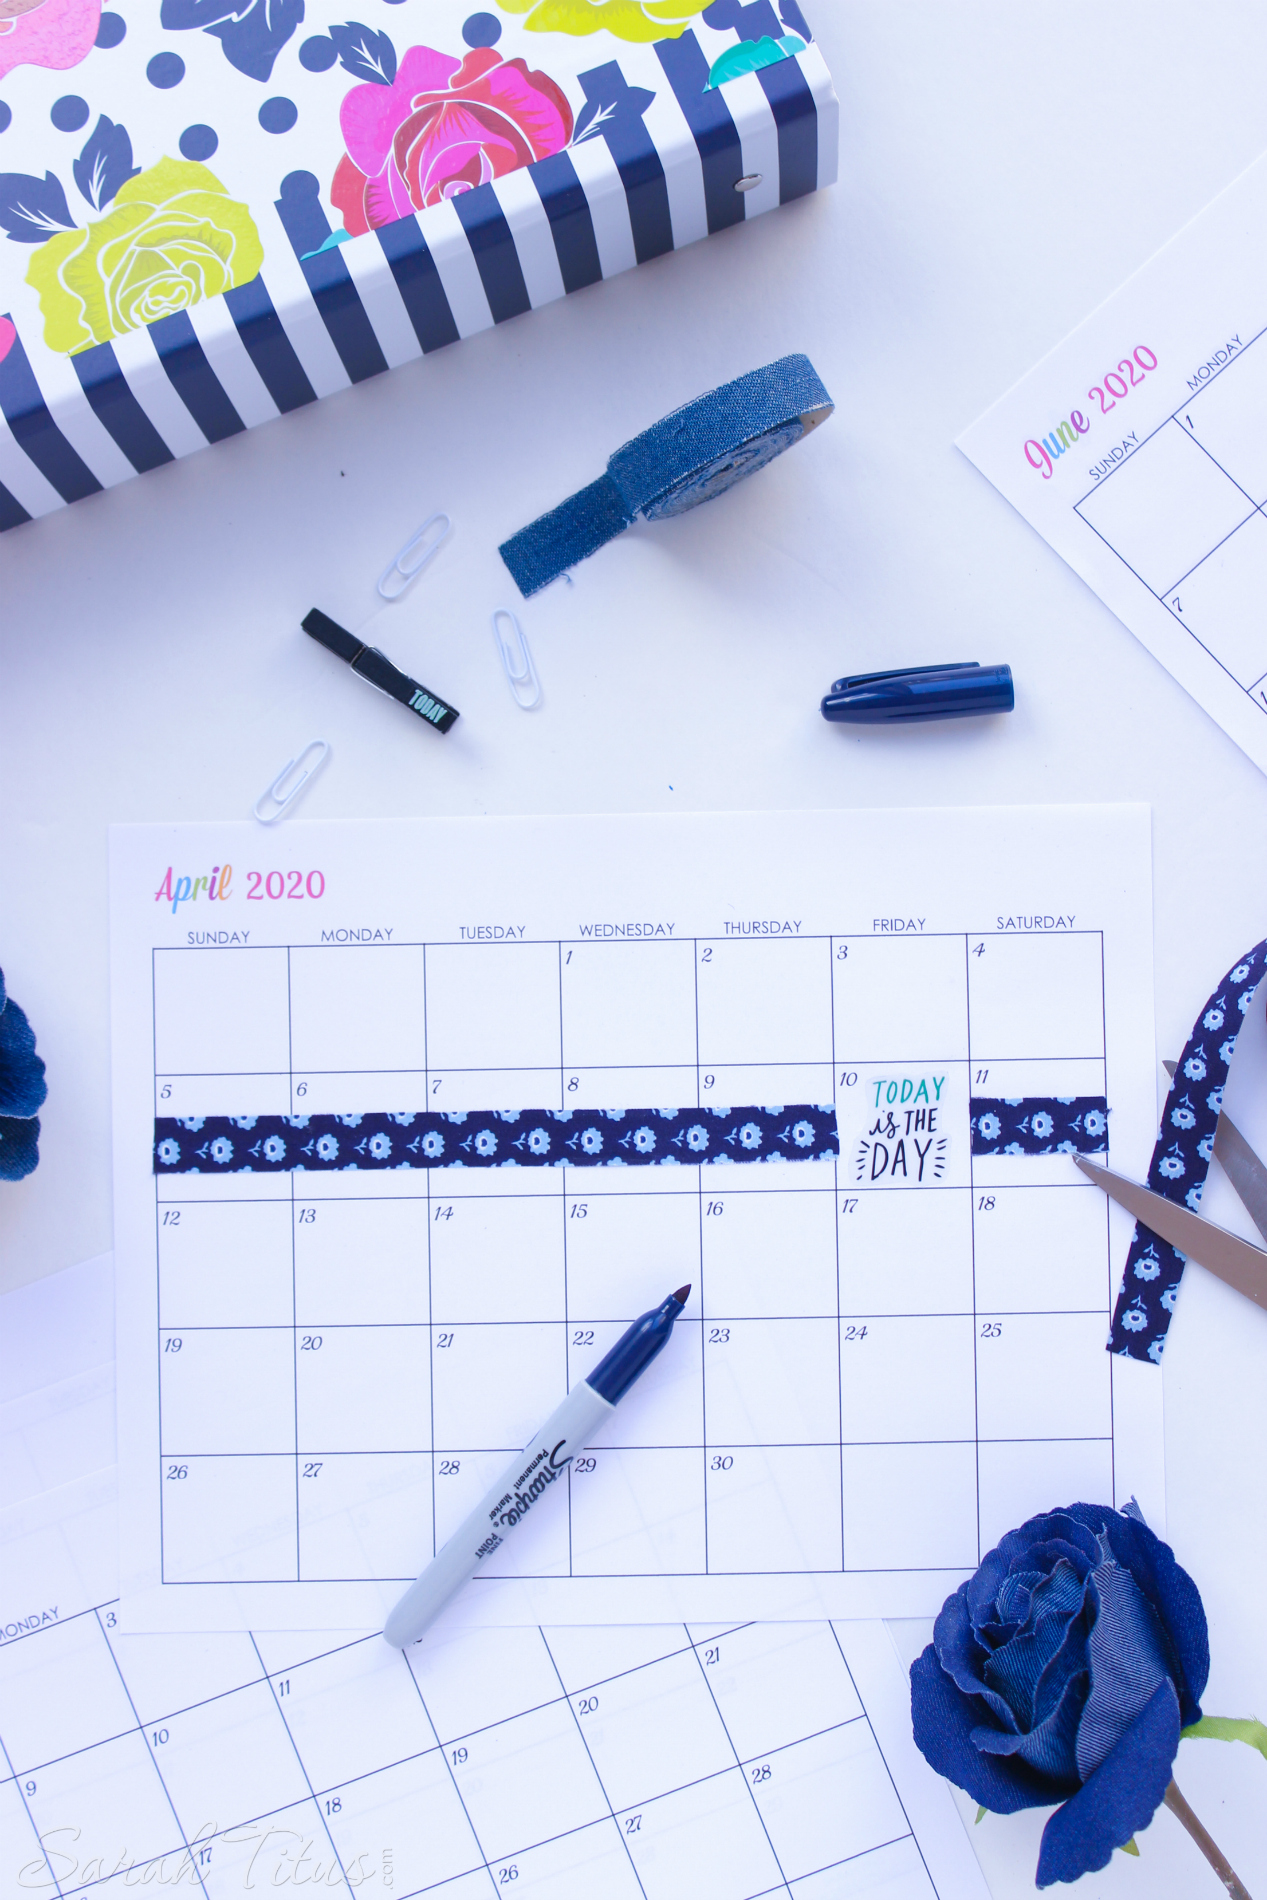 Free Printable 2020 Calendars - Completely editable online!!! Use them for menu planning, homeschooling, blogging, or just to organize your life.